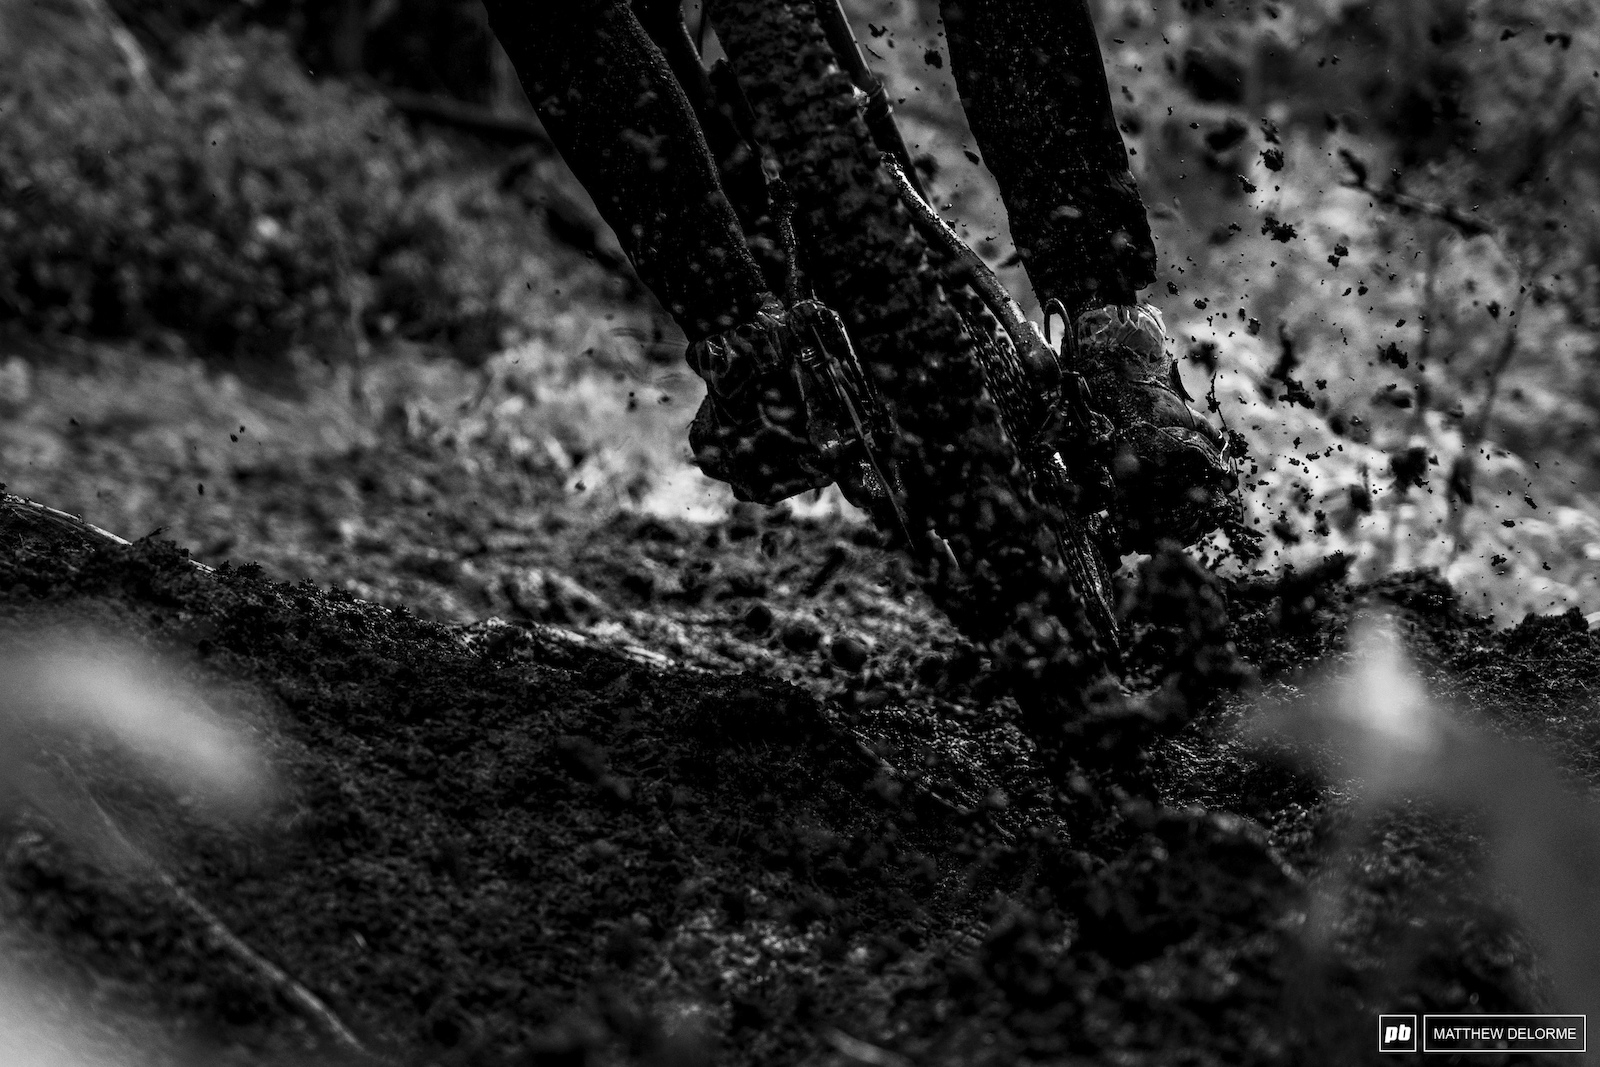 The mud was flying on lower stage one.